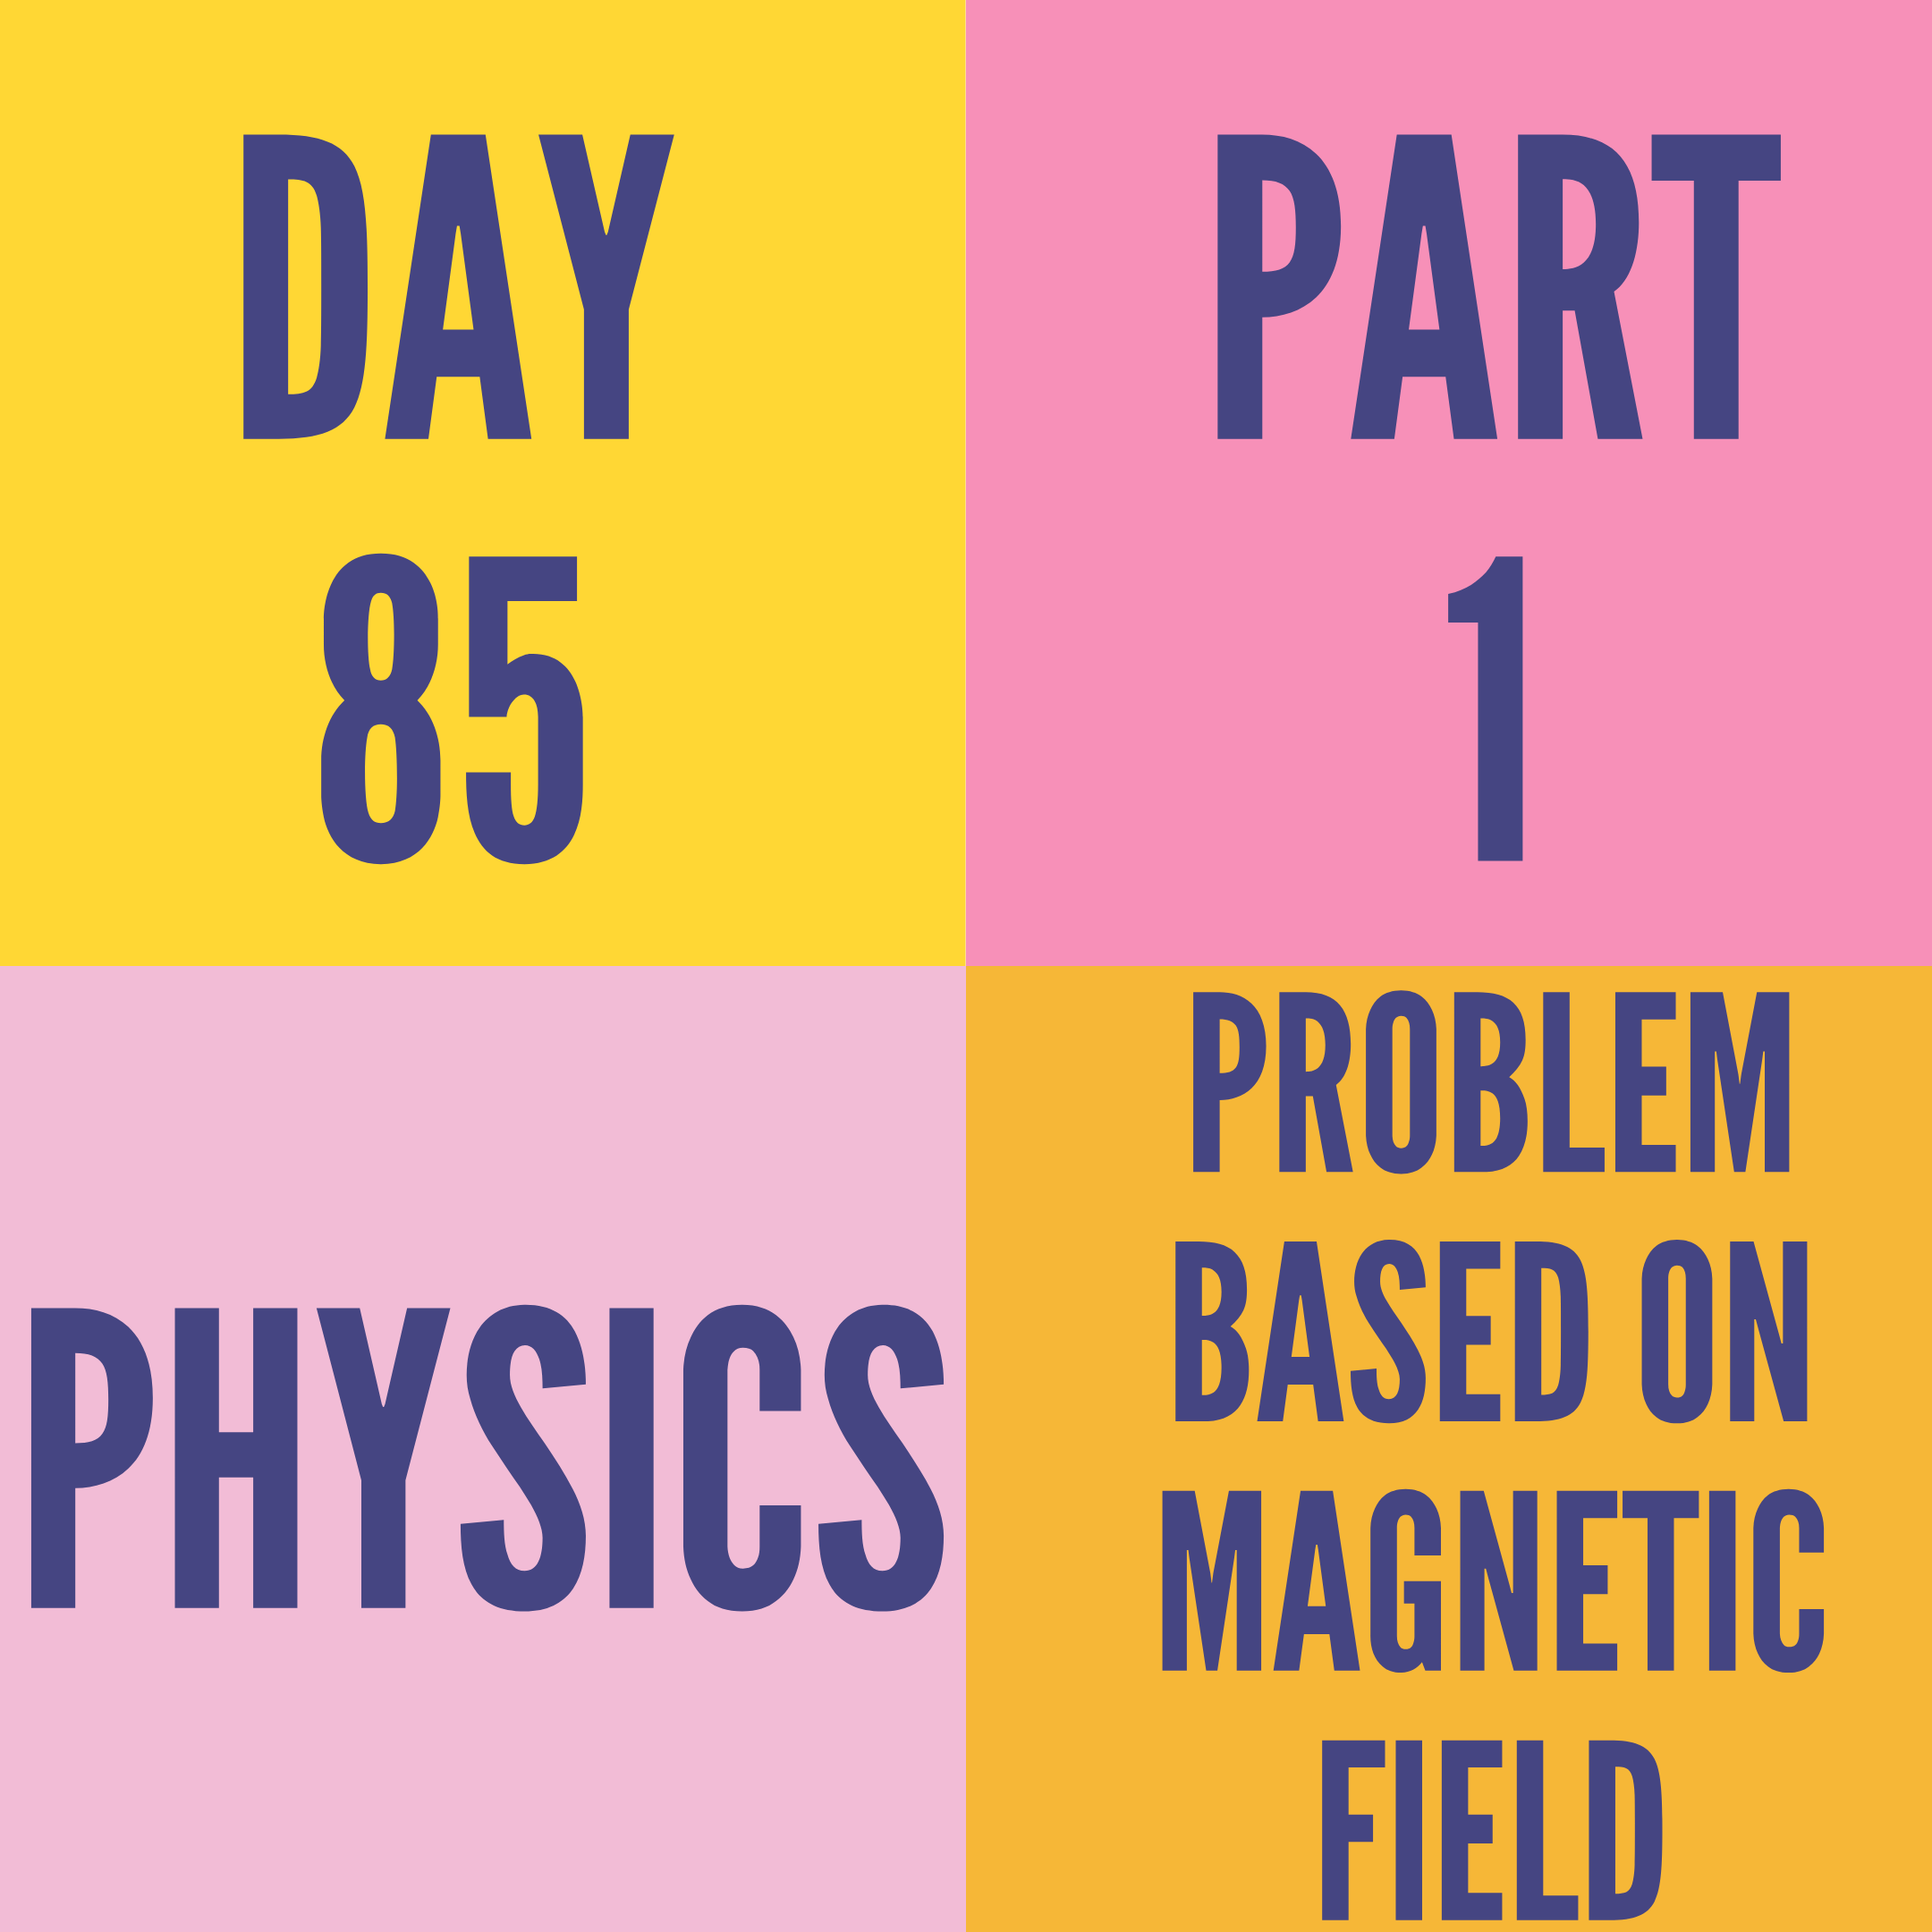 DAY-85 PART-1 PROBLEM BASED ON MAGNETIC FIELD